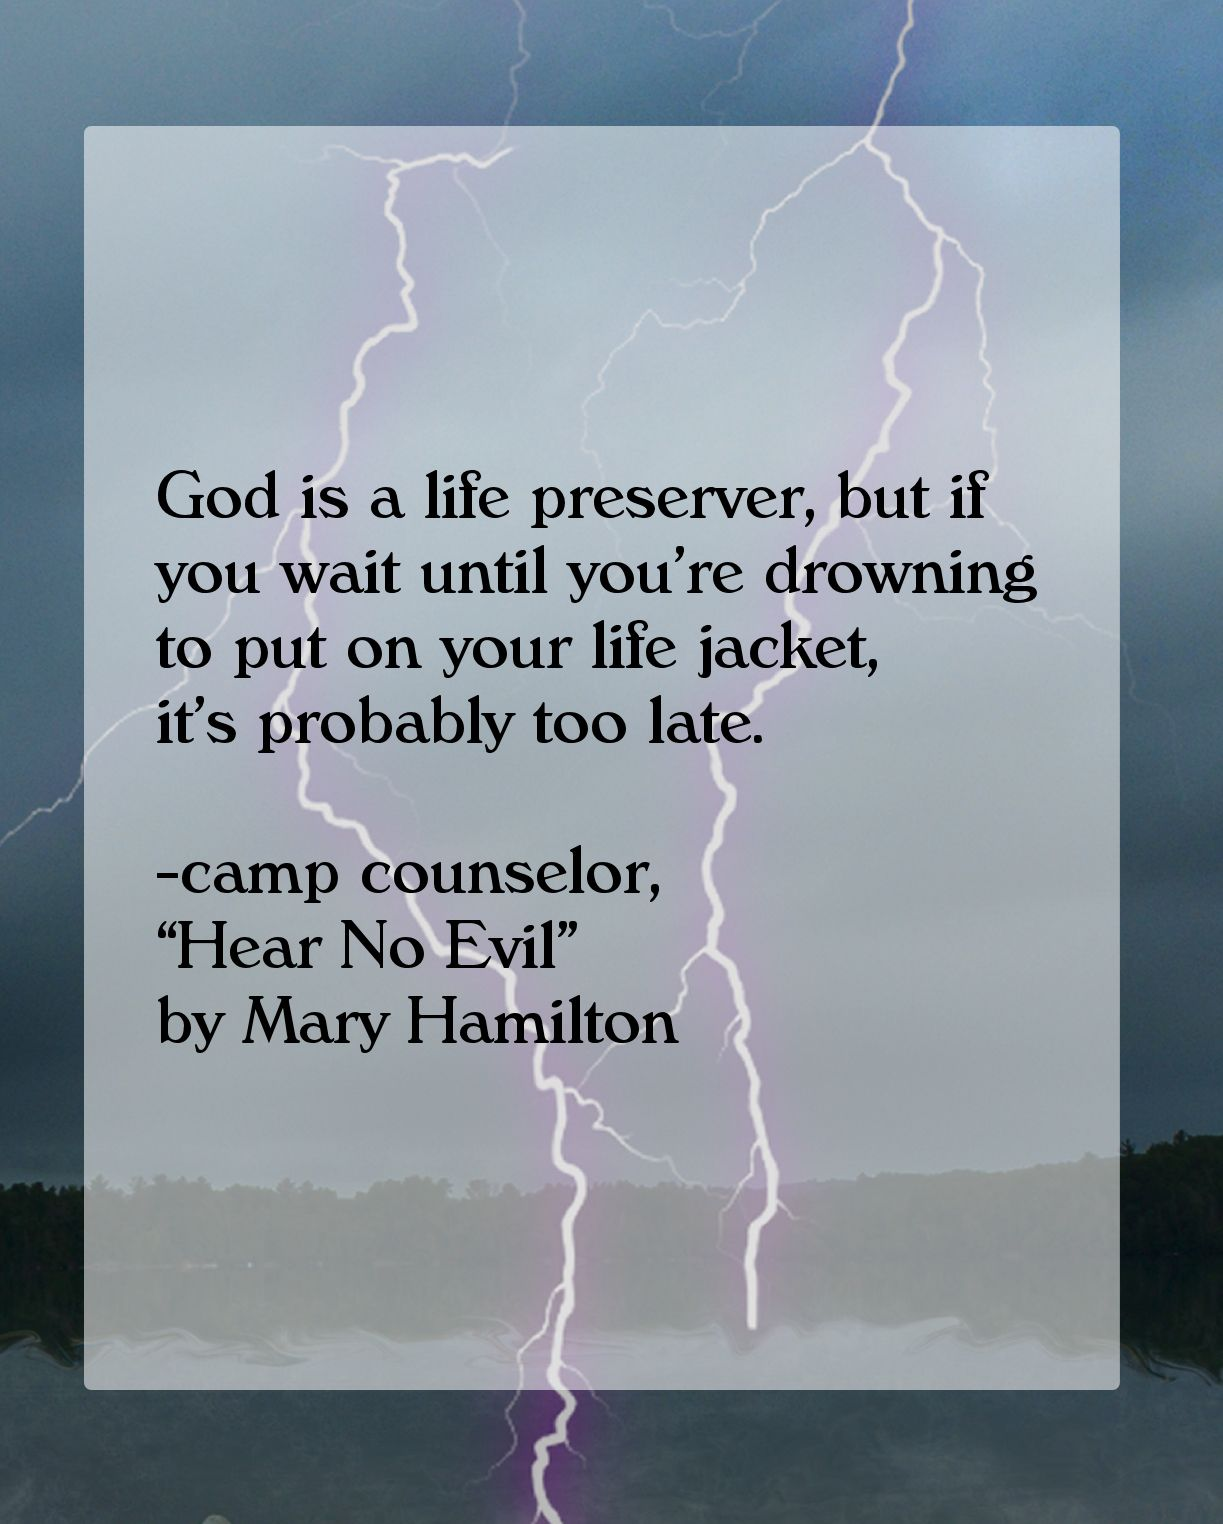 God Is A Life Preserver But If You Wait Until You Re Drowning To Put On Your Life Jacket It S Probably Too Late Camp Counselo Senior Quotes Quotes Sayings